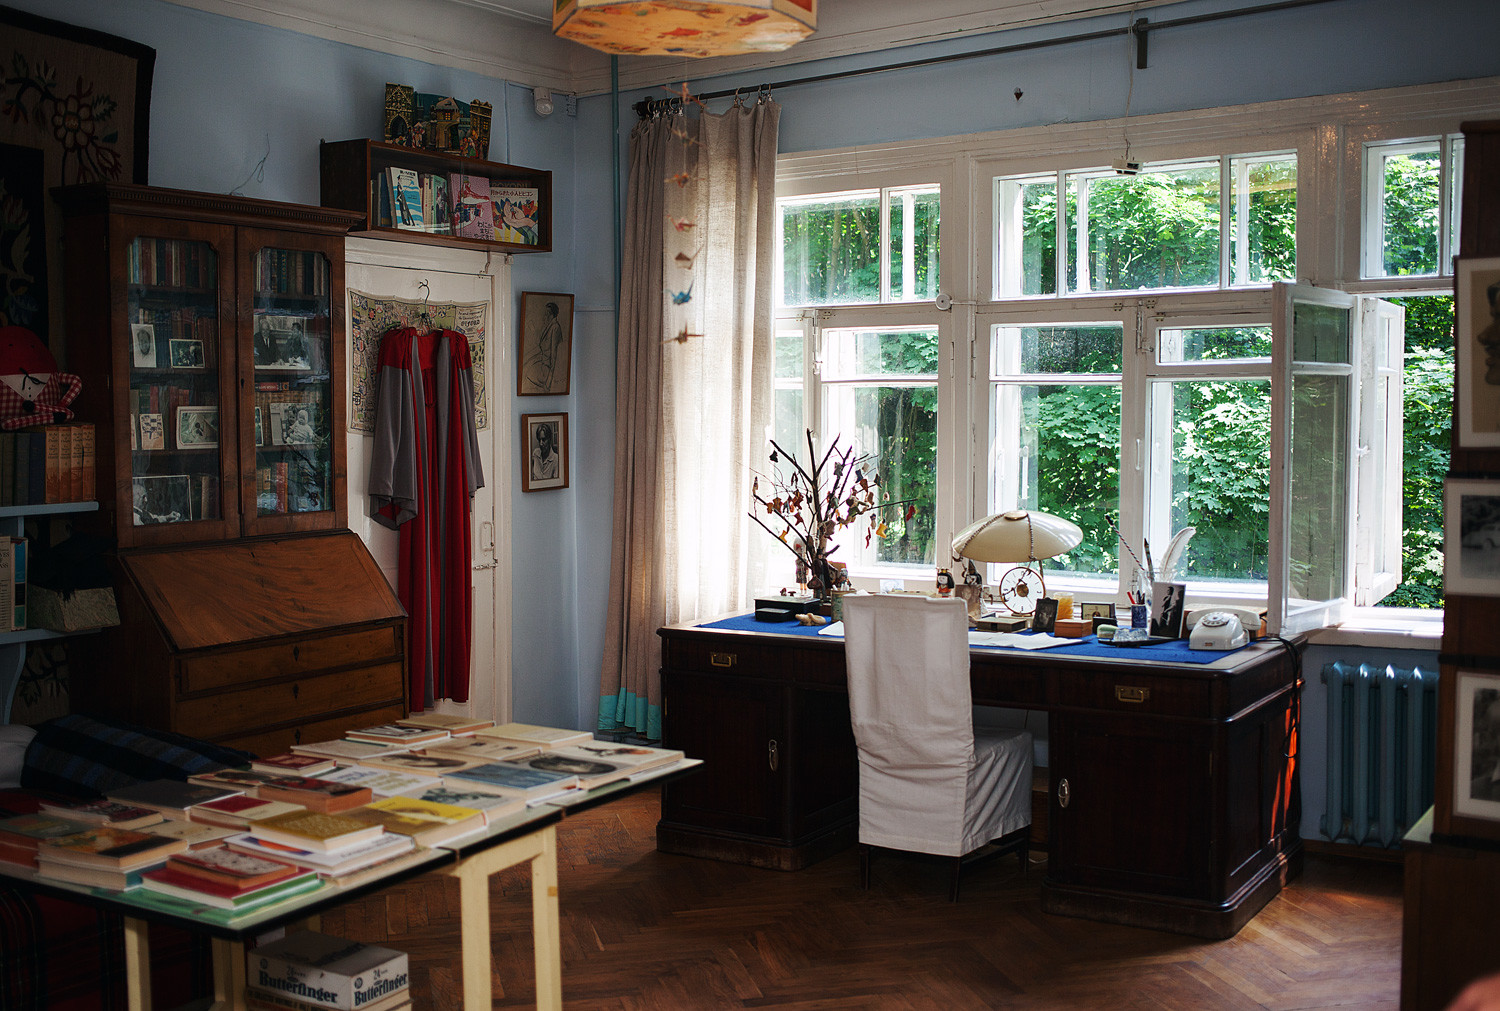 A room where writer Korney Chukovsky lived in his memorial house in Peredelkino.